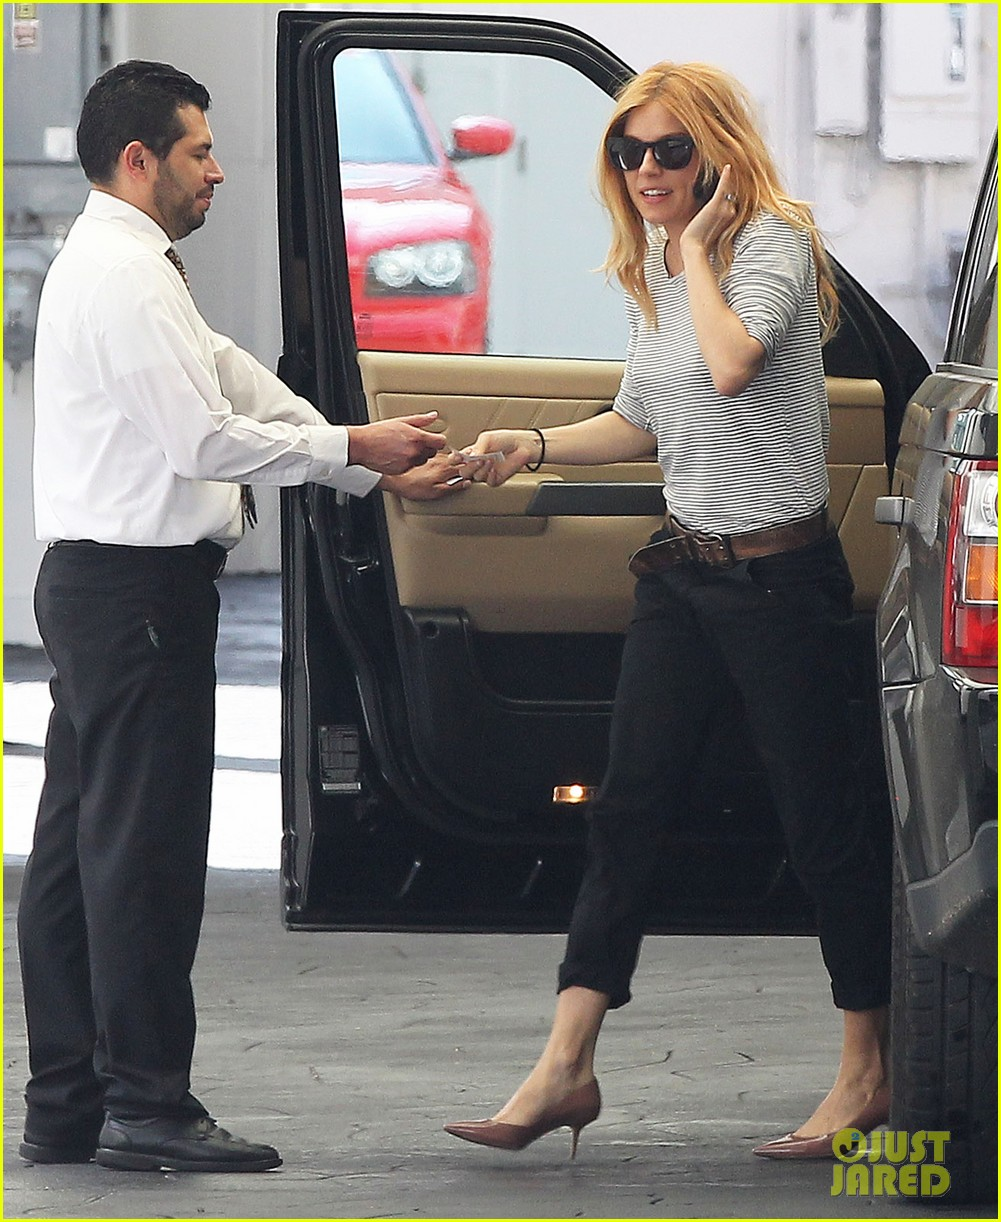 sienna miller sports red hair for busy beverly hills afternoon 083067747